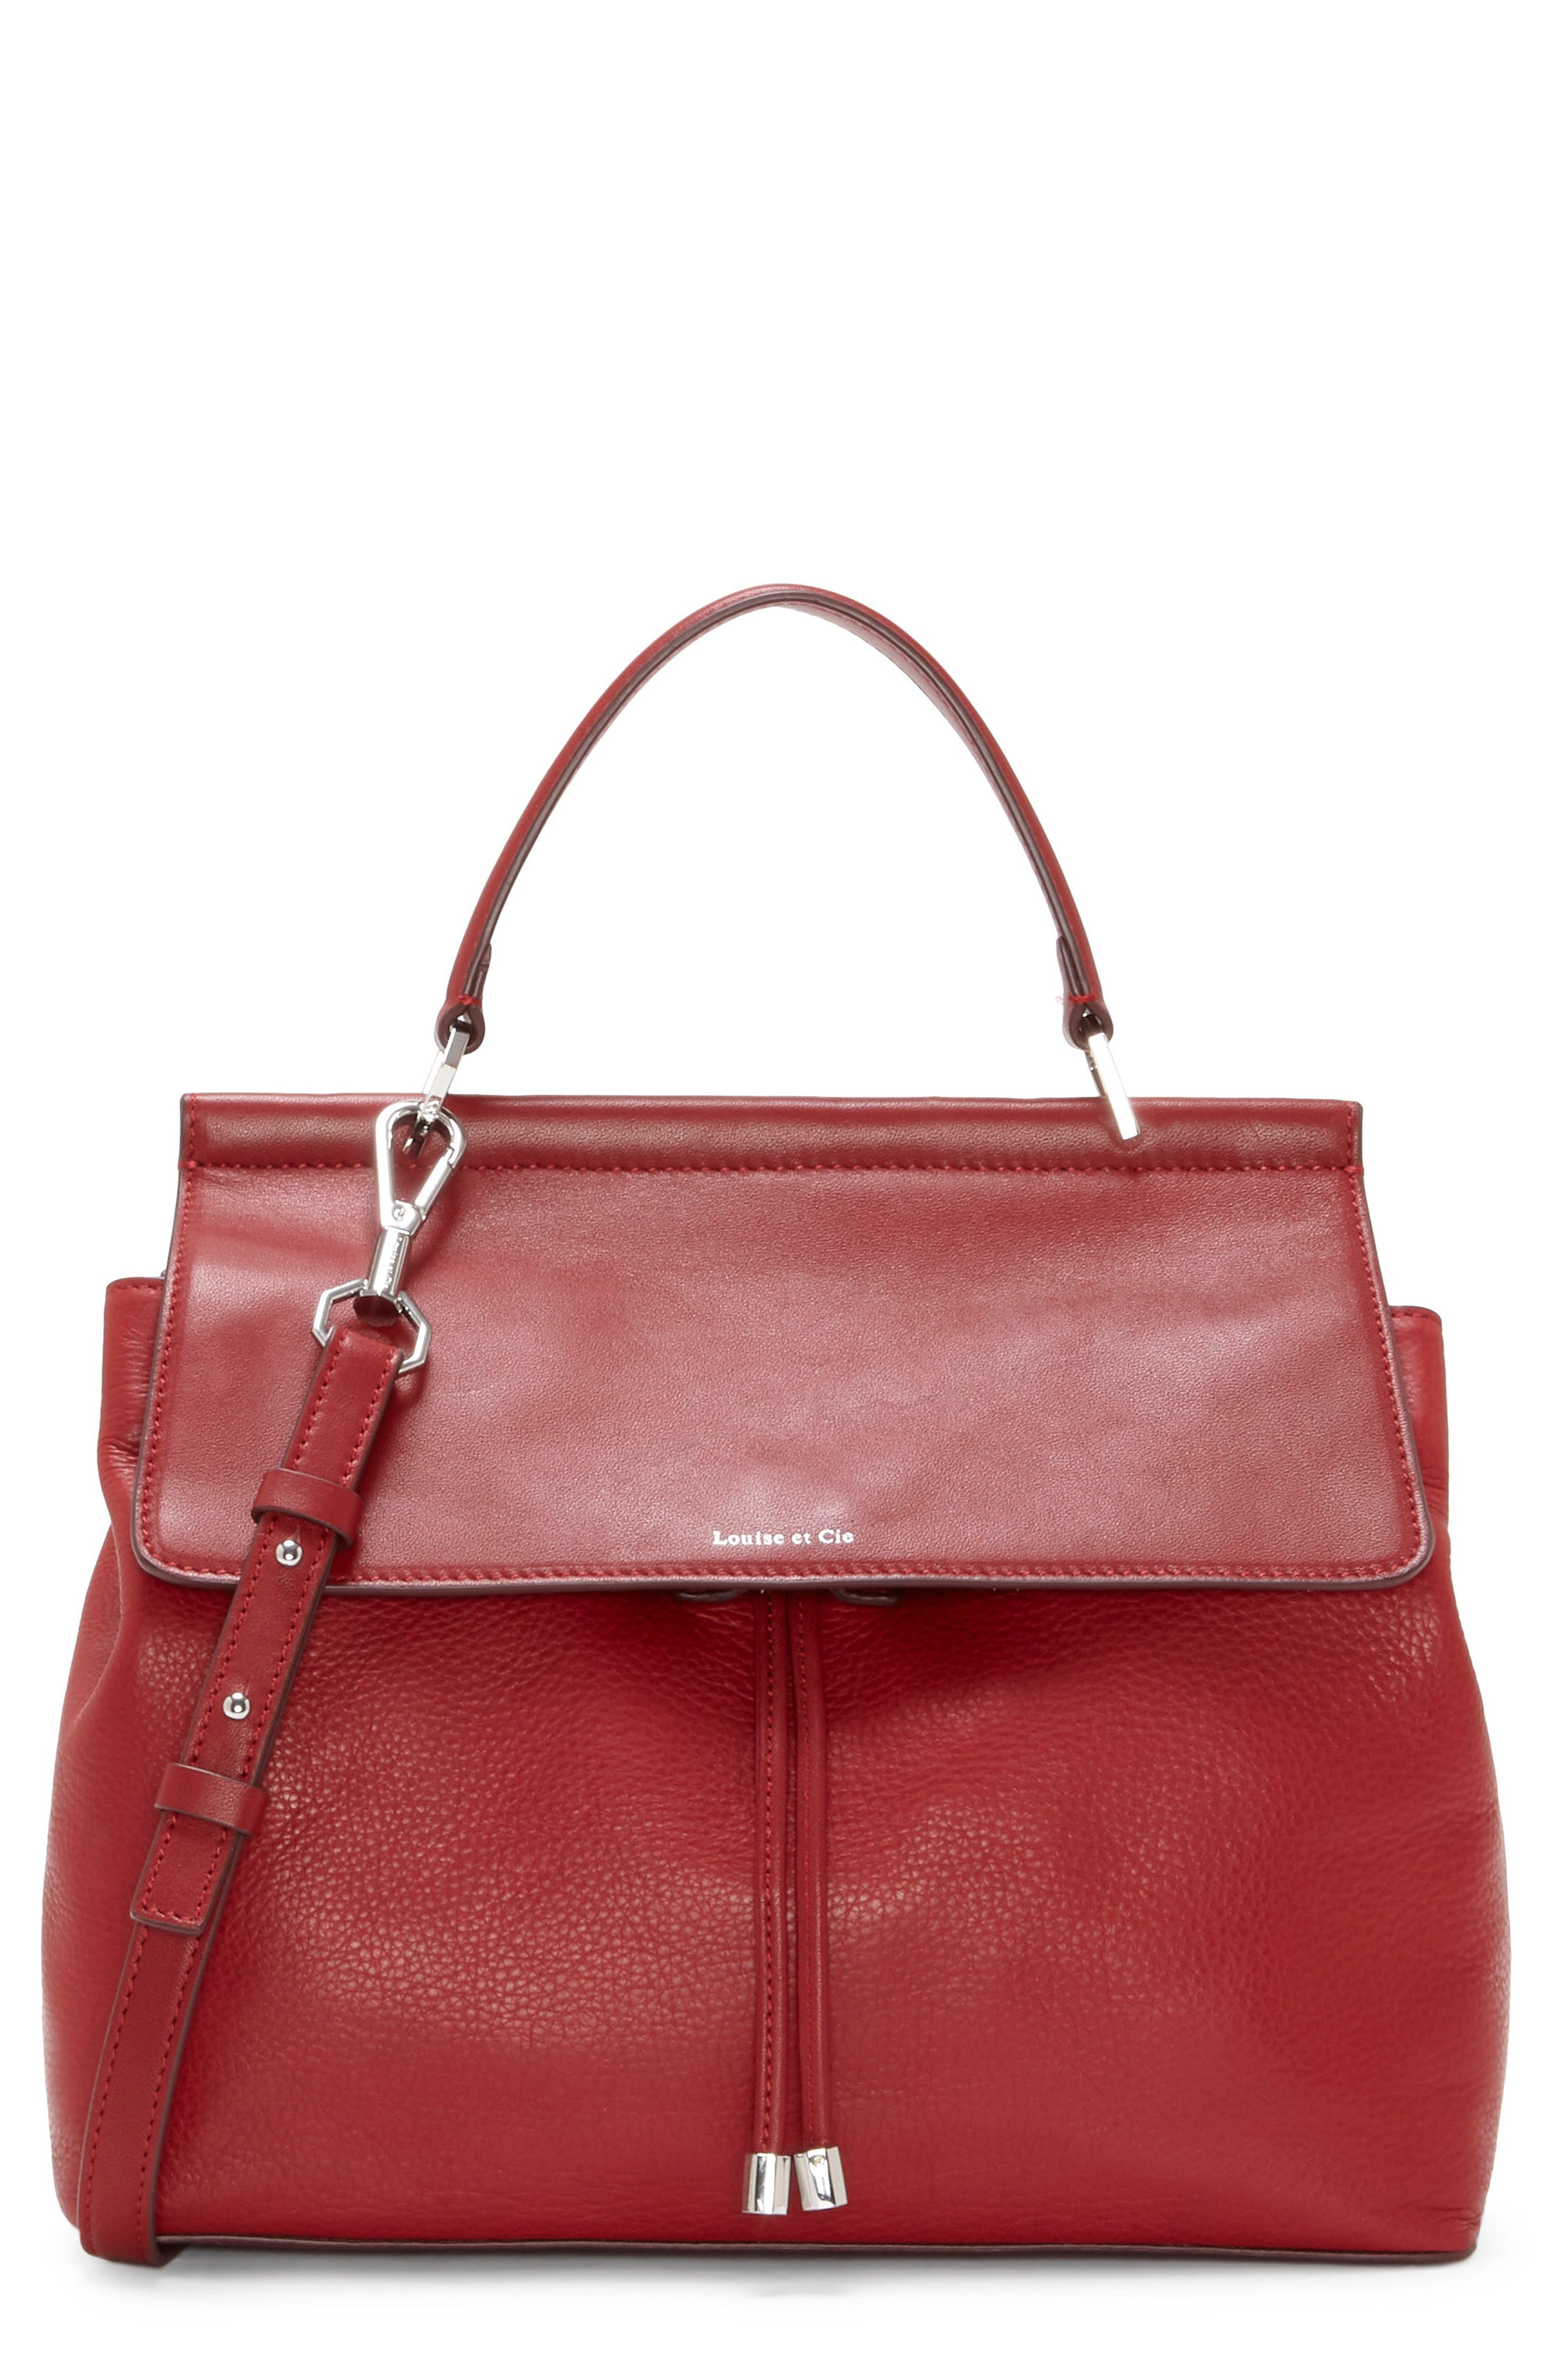 Alternate Image 1 Selected - Louise et Cie 'Towa' Leather Top Handle Satchel